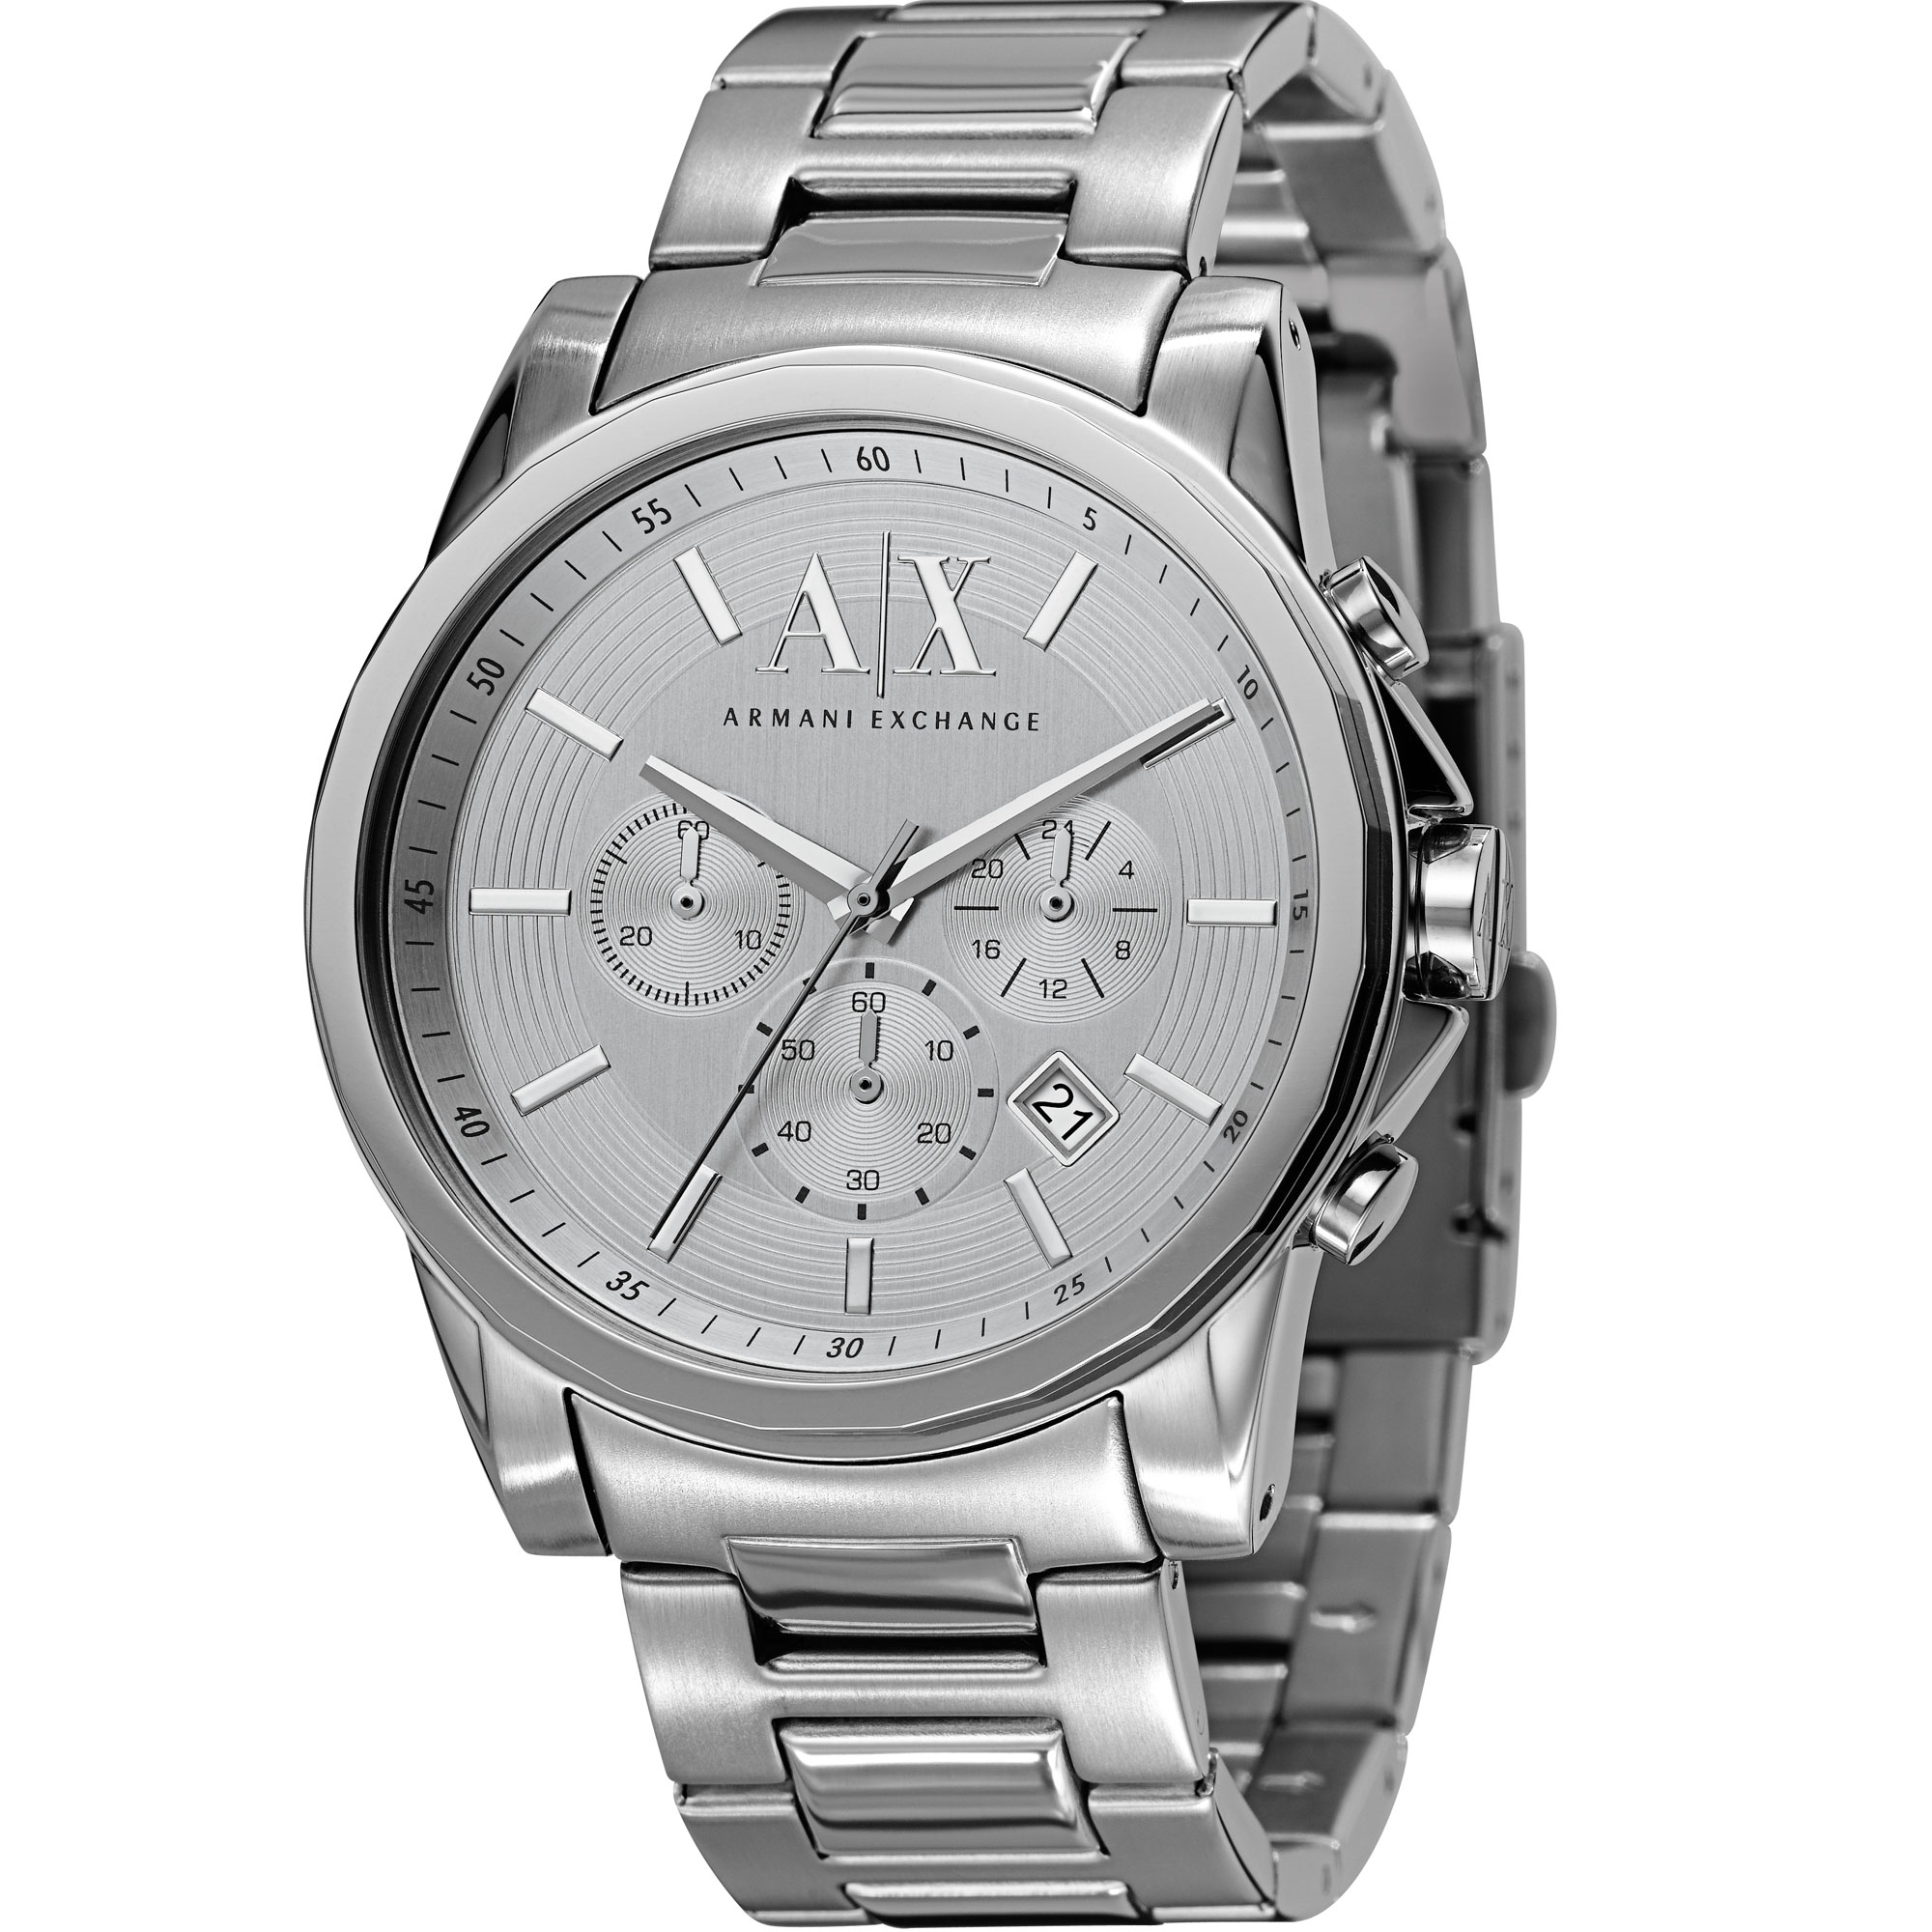 0214466ec5b Gents Armani Exchange Chronograph Watch (AX2058)